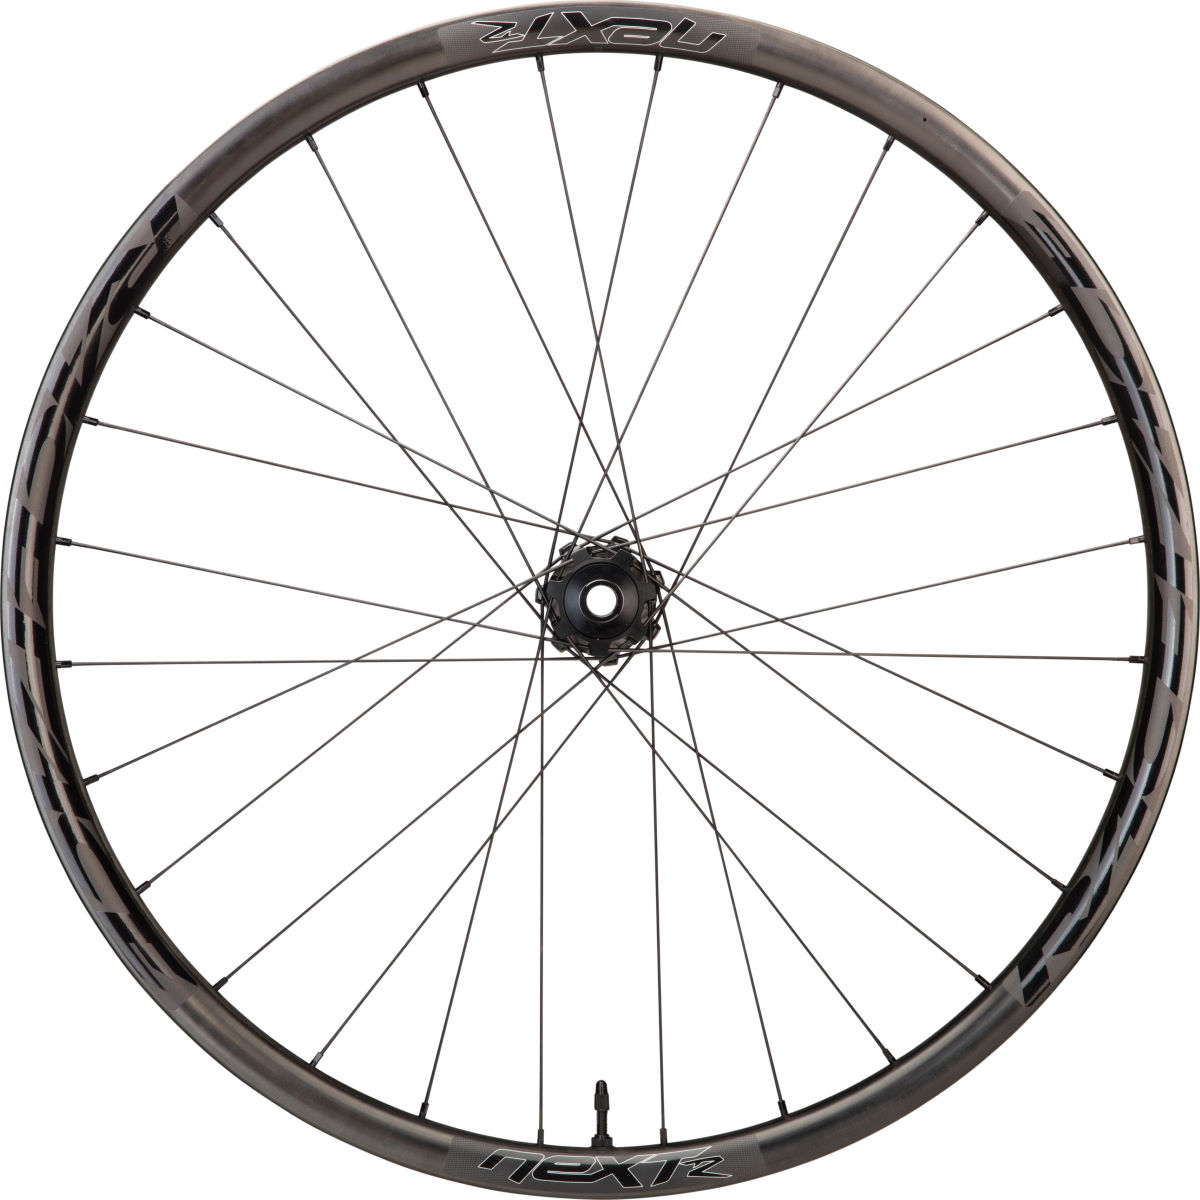 Roue avant VTT Race Face Next R - 15 x 100mm 27.5'' Roues performance